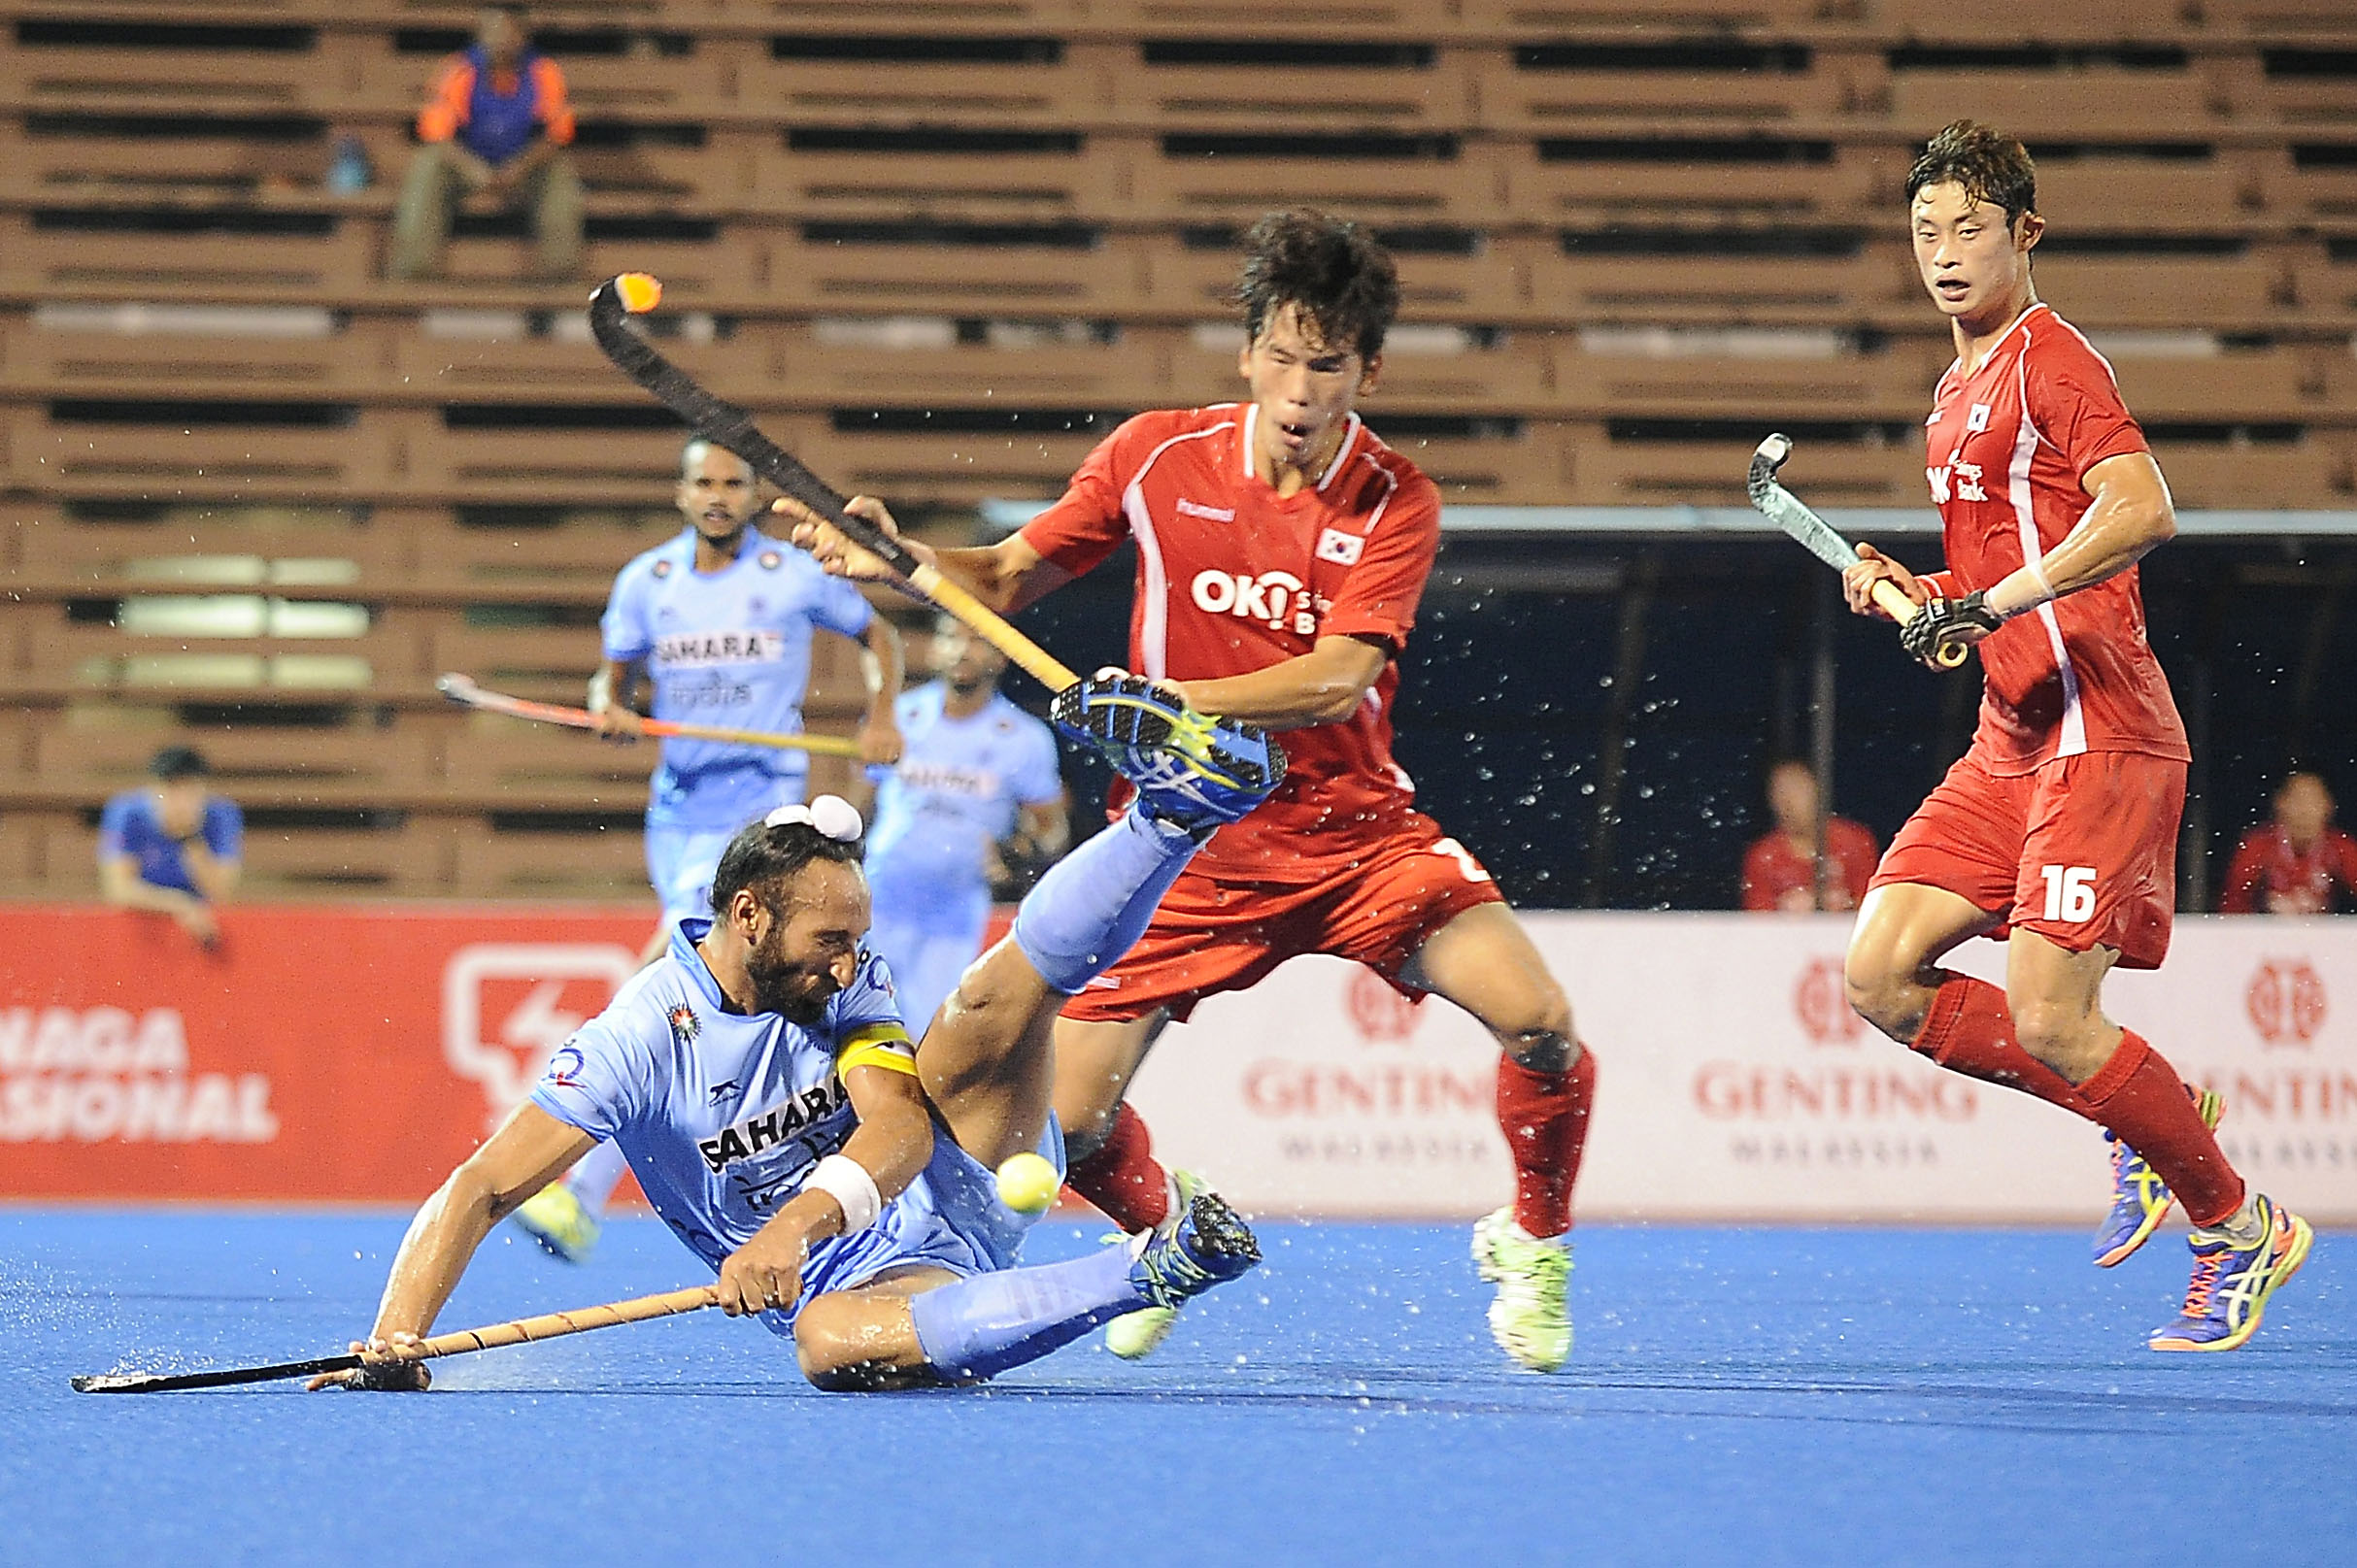 India's captain, Sardar Singh (left) in action against Korea during their QNET 4th Men's Asian Champions Trophy 2016 match at the Wisma Belia Hockey Stadium, Kuantan today. The match ended 1-1.